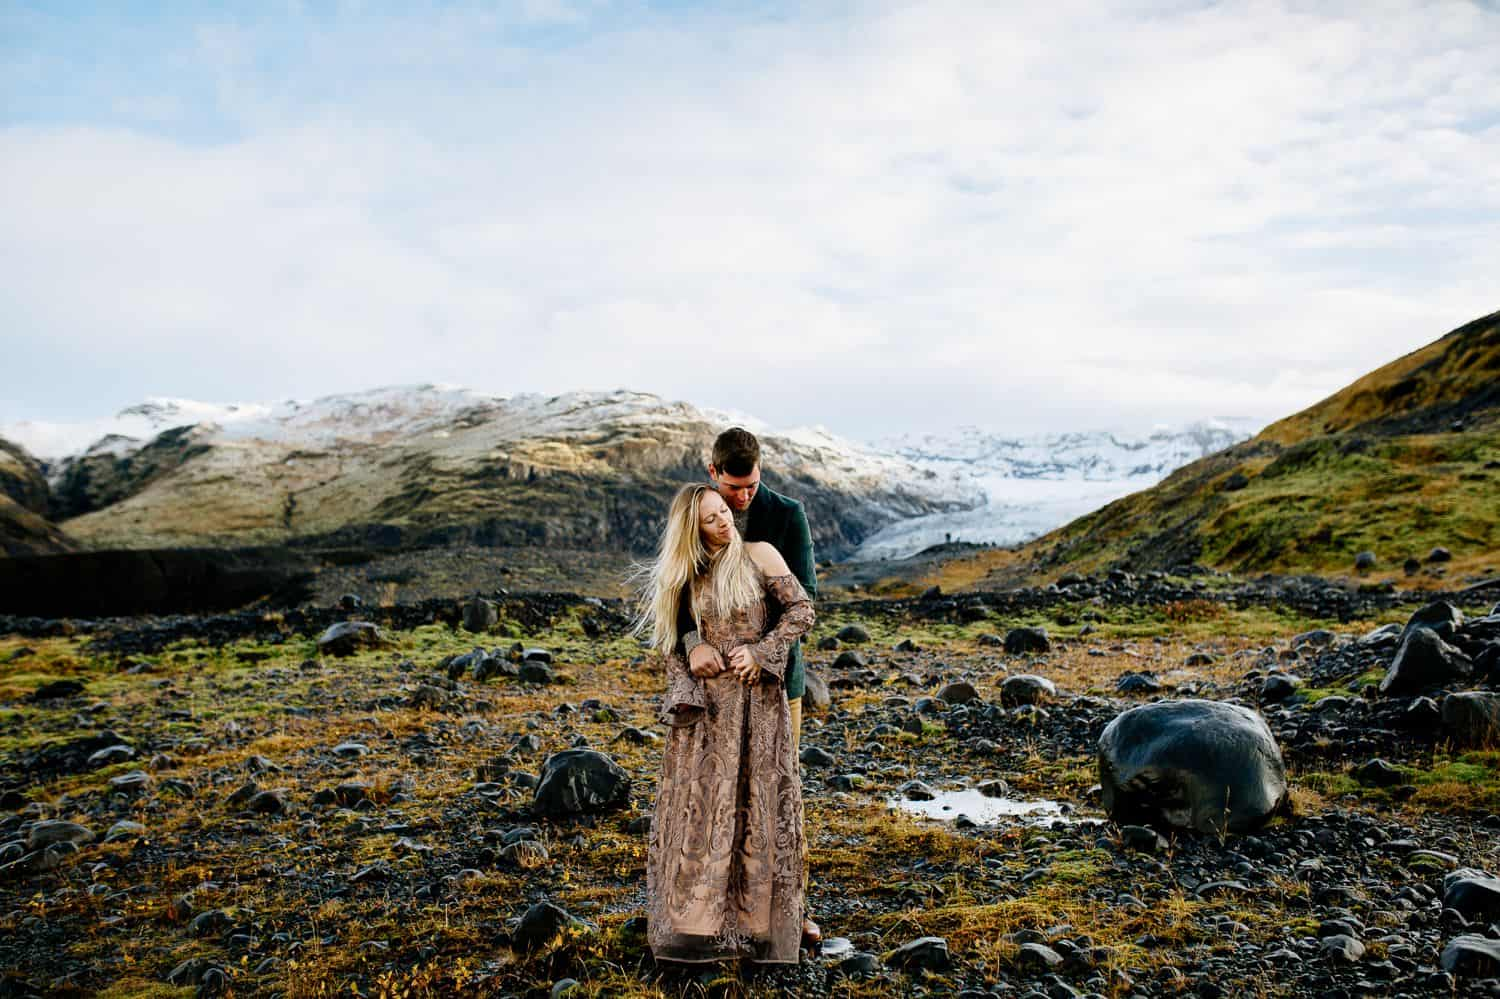 Man in a green jacket embraces a woman in a brown lace dress from behind. In the background you see the green and snow-capped hills of Iceland.